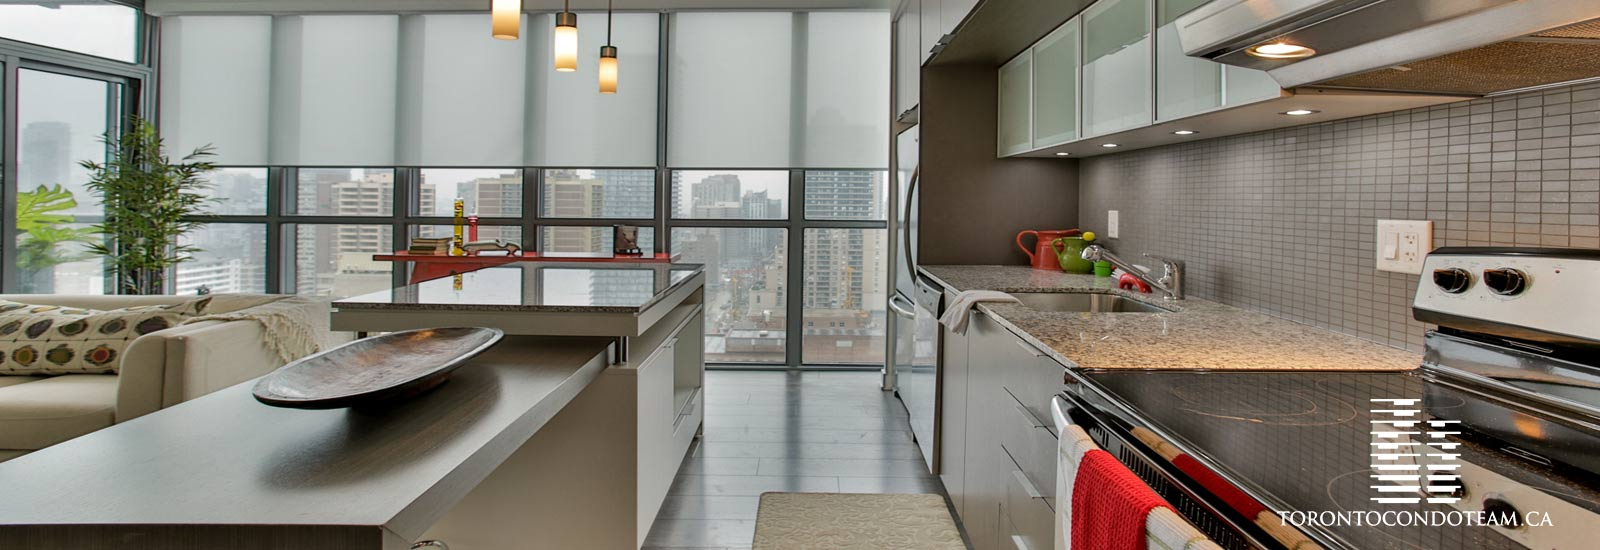 110 Charles Street East Condos For Sale